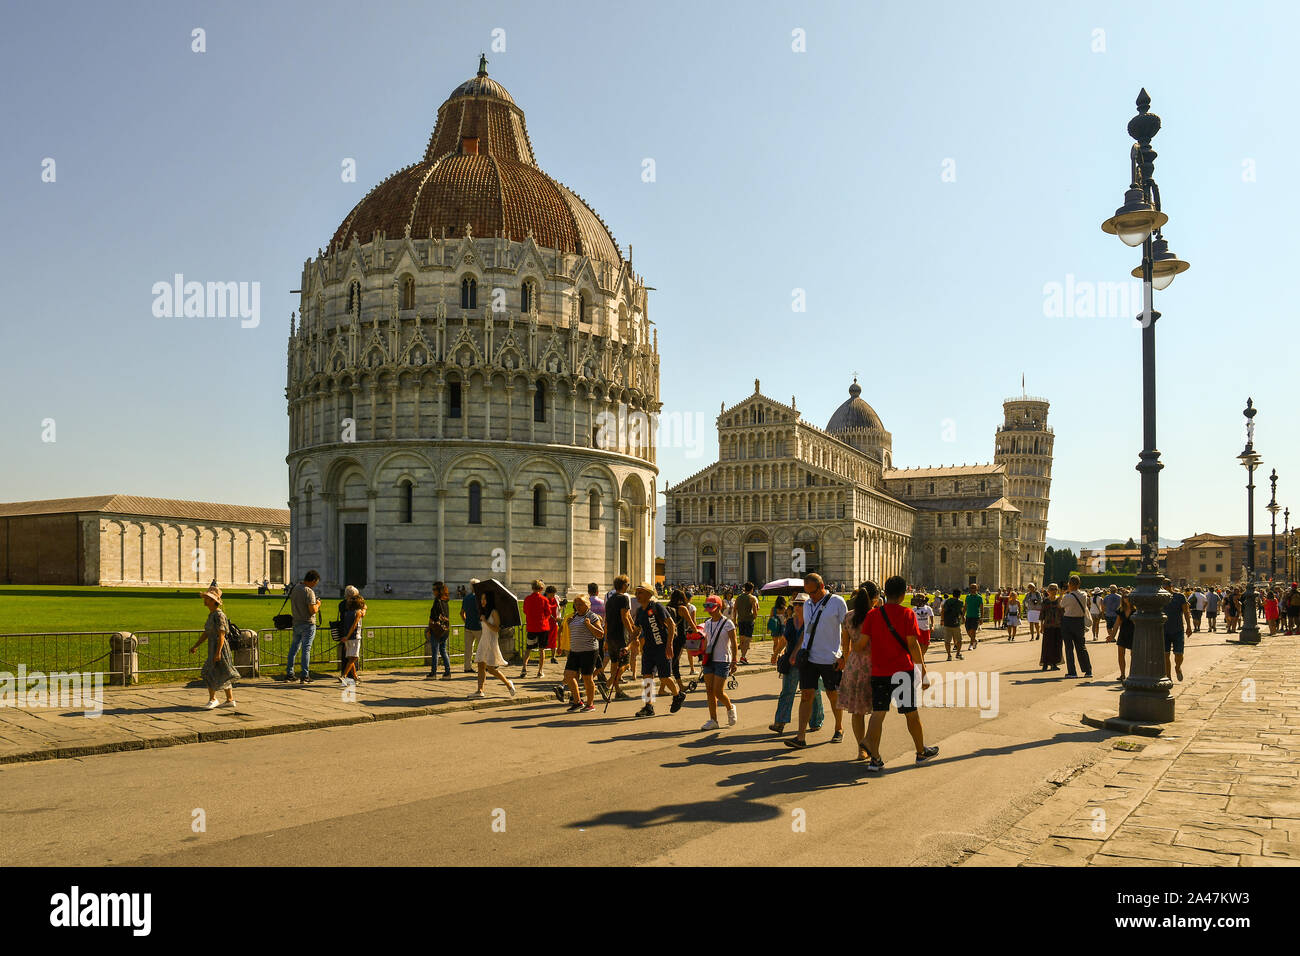 Scenic view of the famous Piazza dei Miracoli square in Pisa with the Baptistery of St John, the Cathedral and the Leaning Tower, Tuscany, Italy Stock Photo